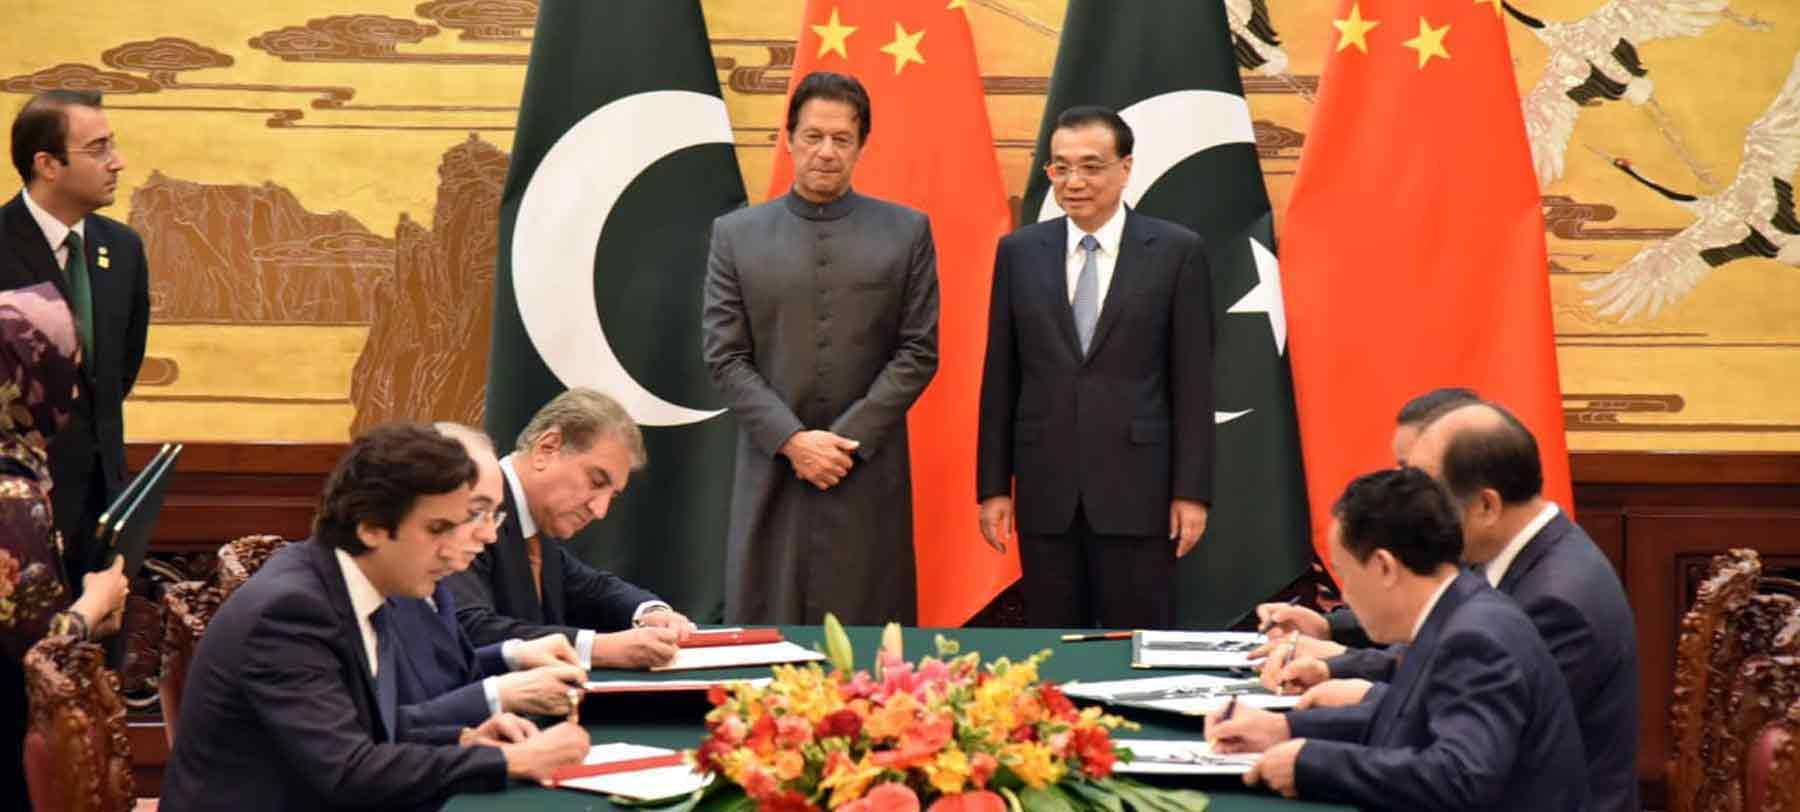 Prime Minister Imran Khan Meeting with Primer Li Keqiang